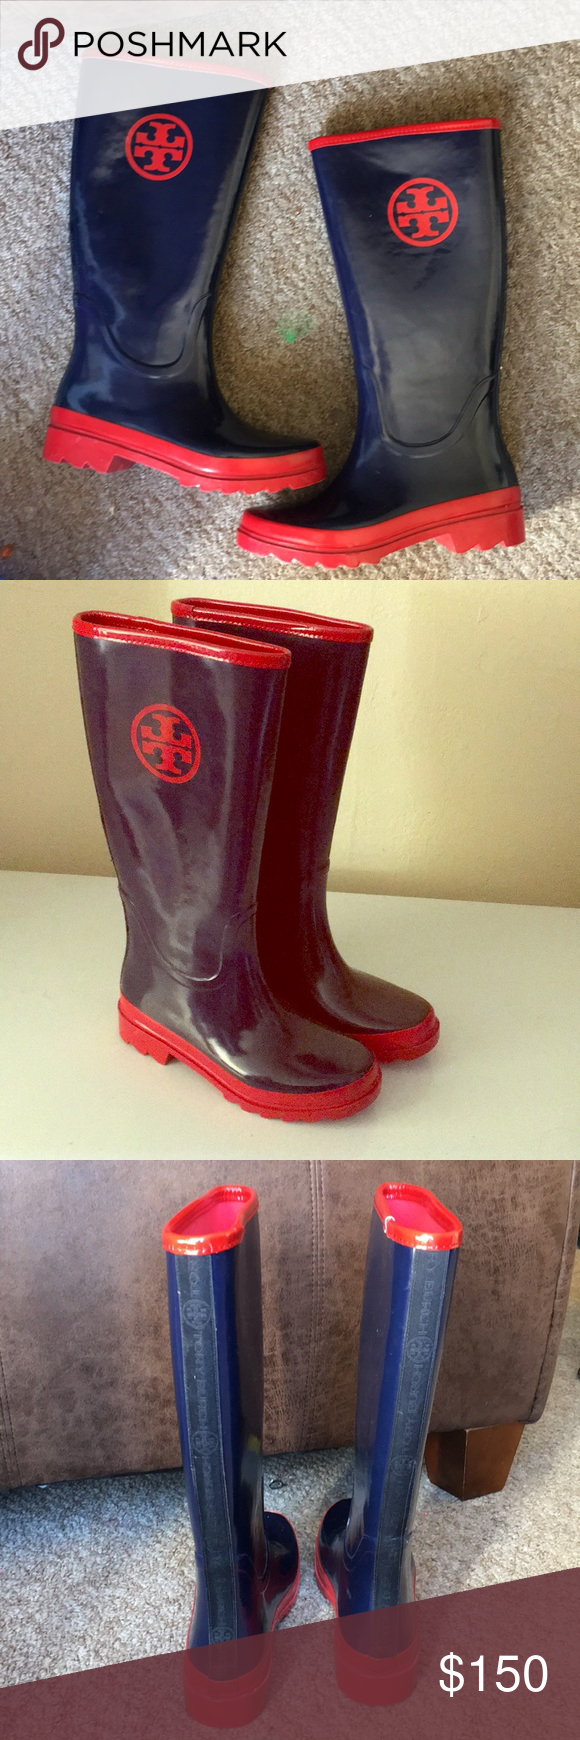 c597d025ec13 Authentic Tory Burch rubber rain boots Excellent used condition authentic Tory  Burch rubber rain boots blue and red. Size 7 but fits like 7.5.